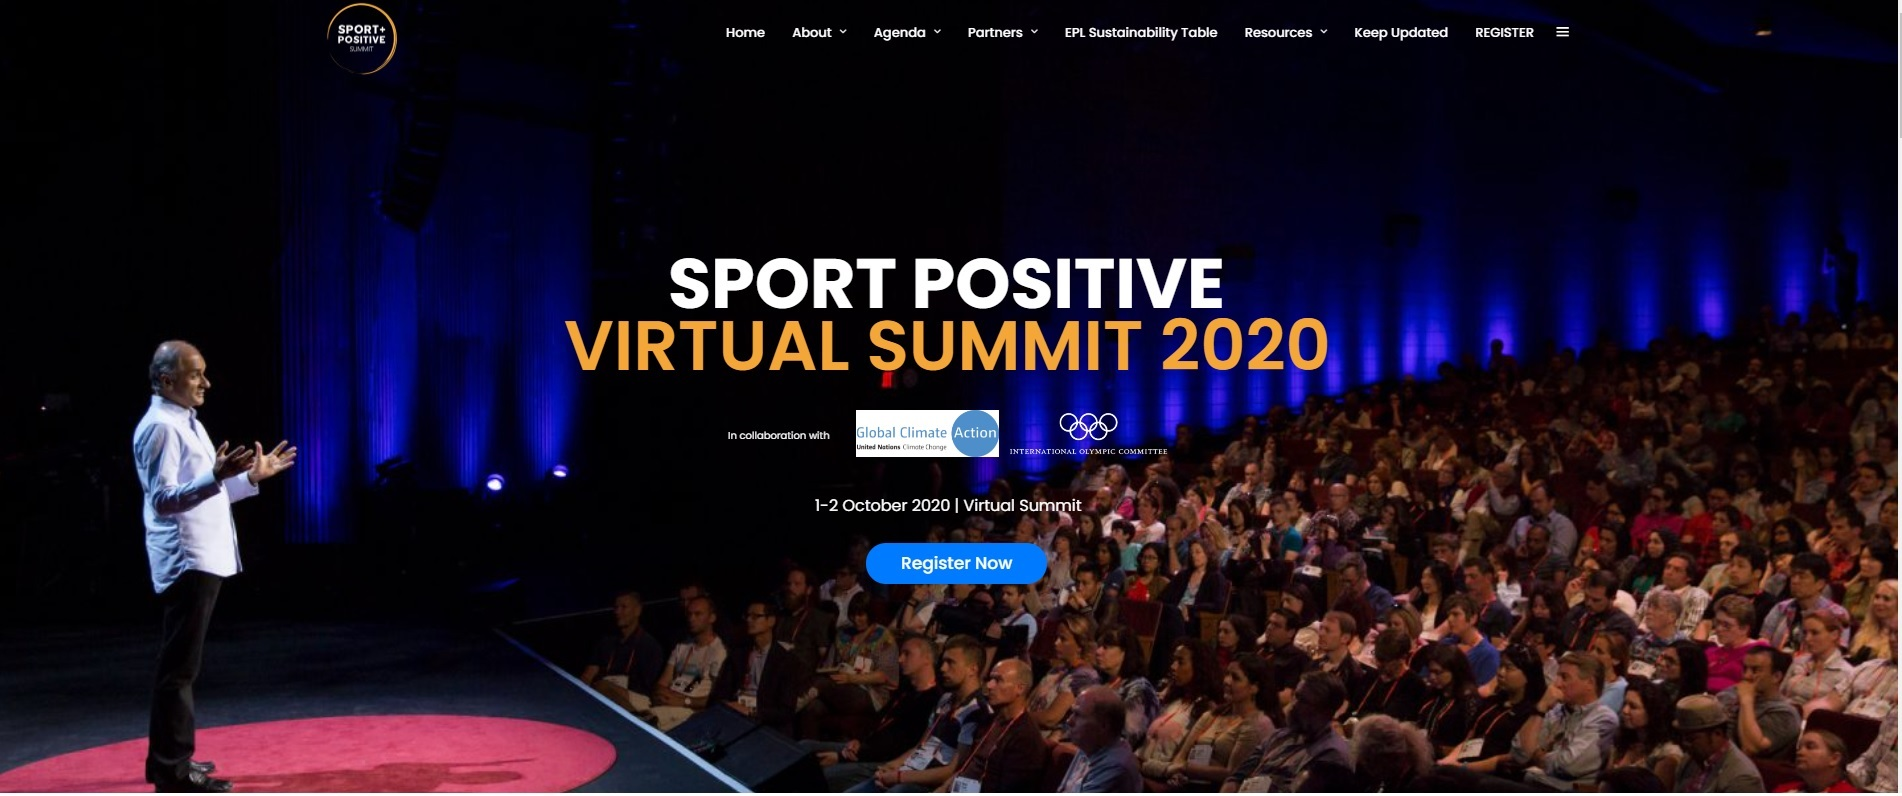 Sport Positive Virtual Summit 2020